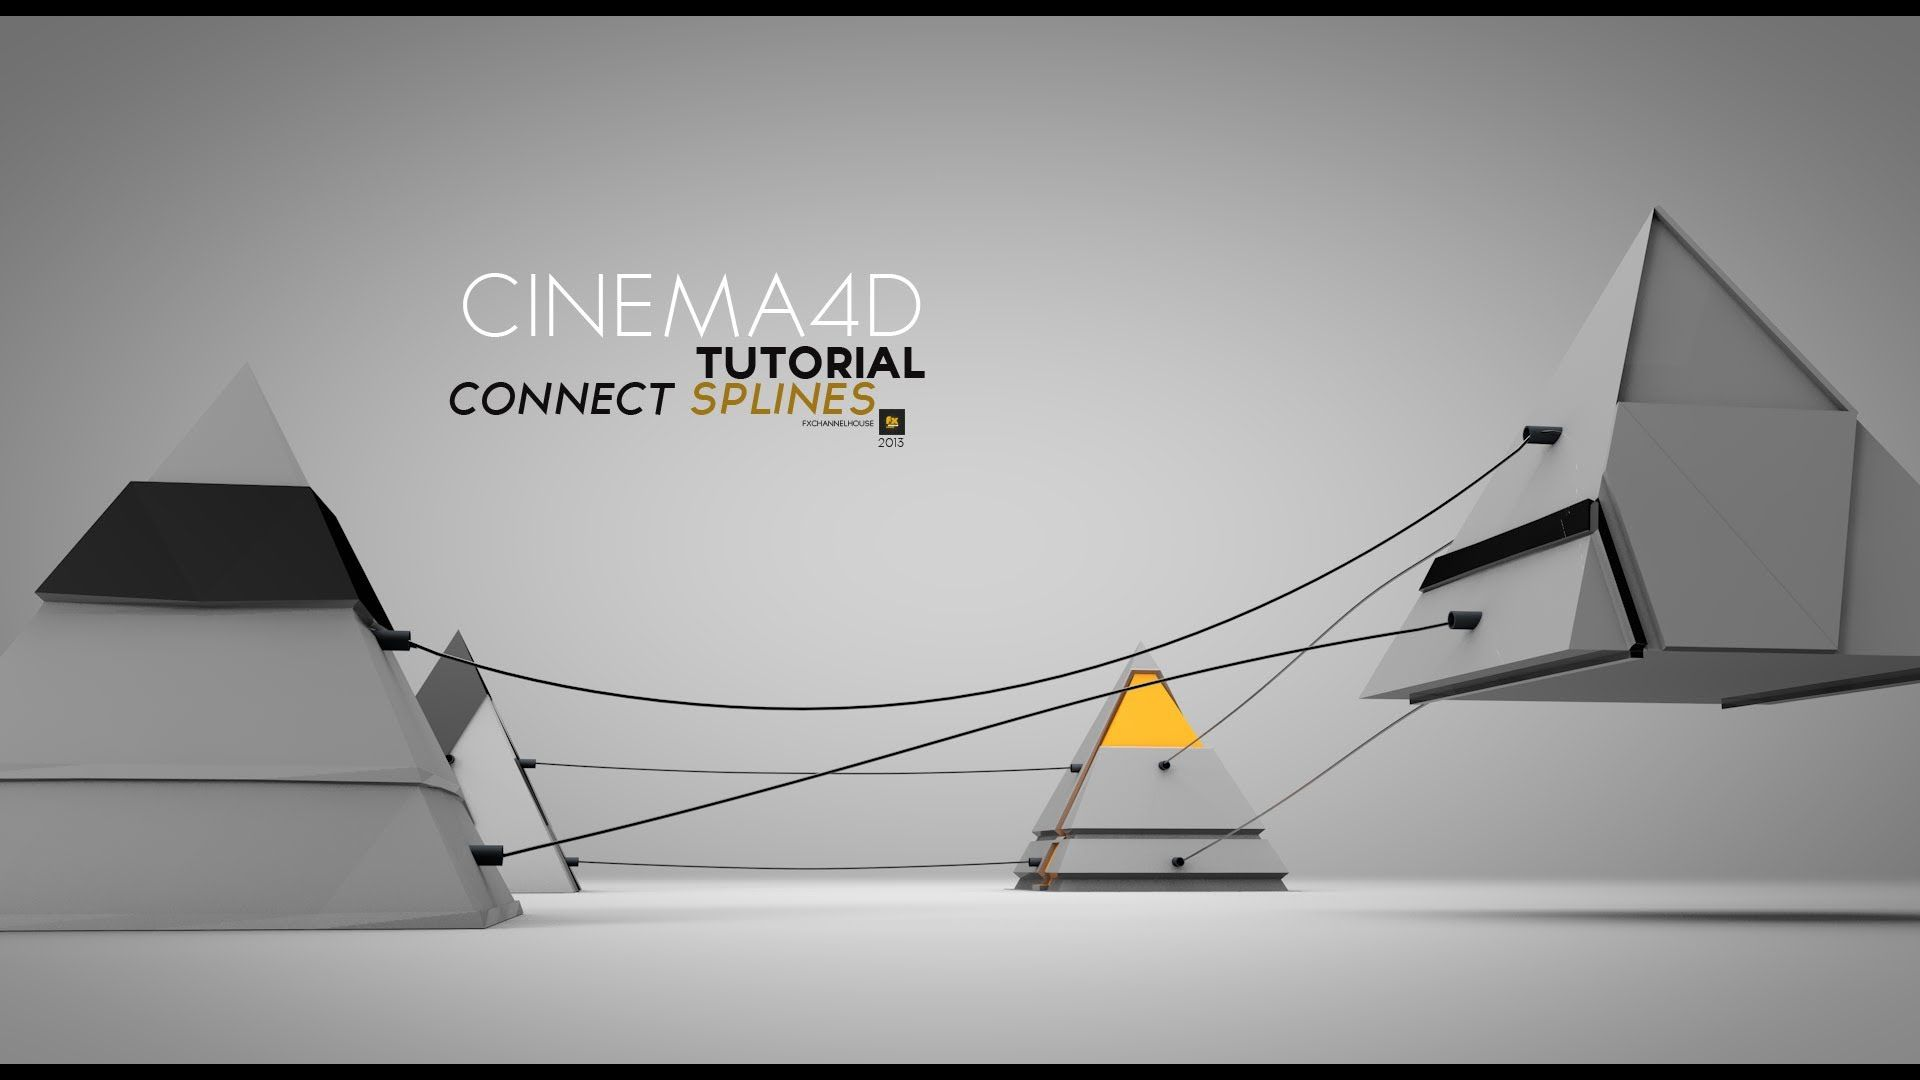 cinema4d dynamic splines tutorial connect wires c4d. Black Bedroom Furniture Sets. Home Design Ideas